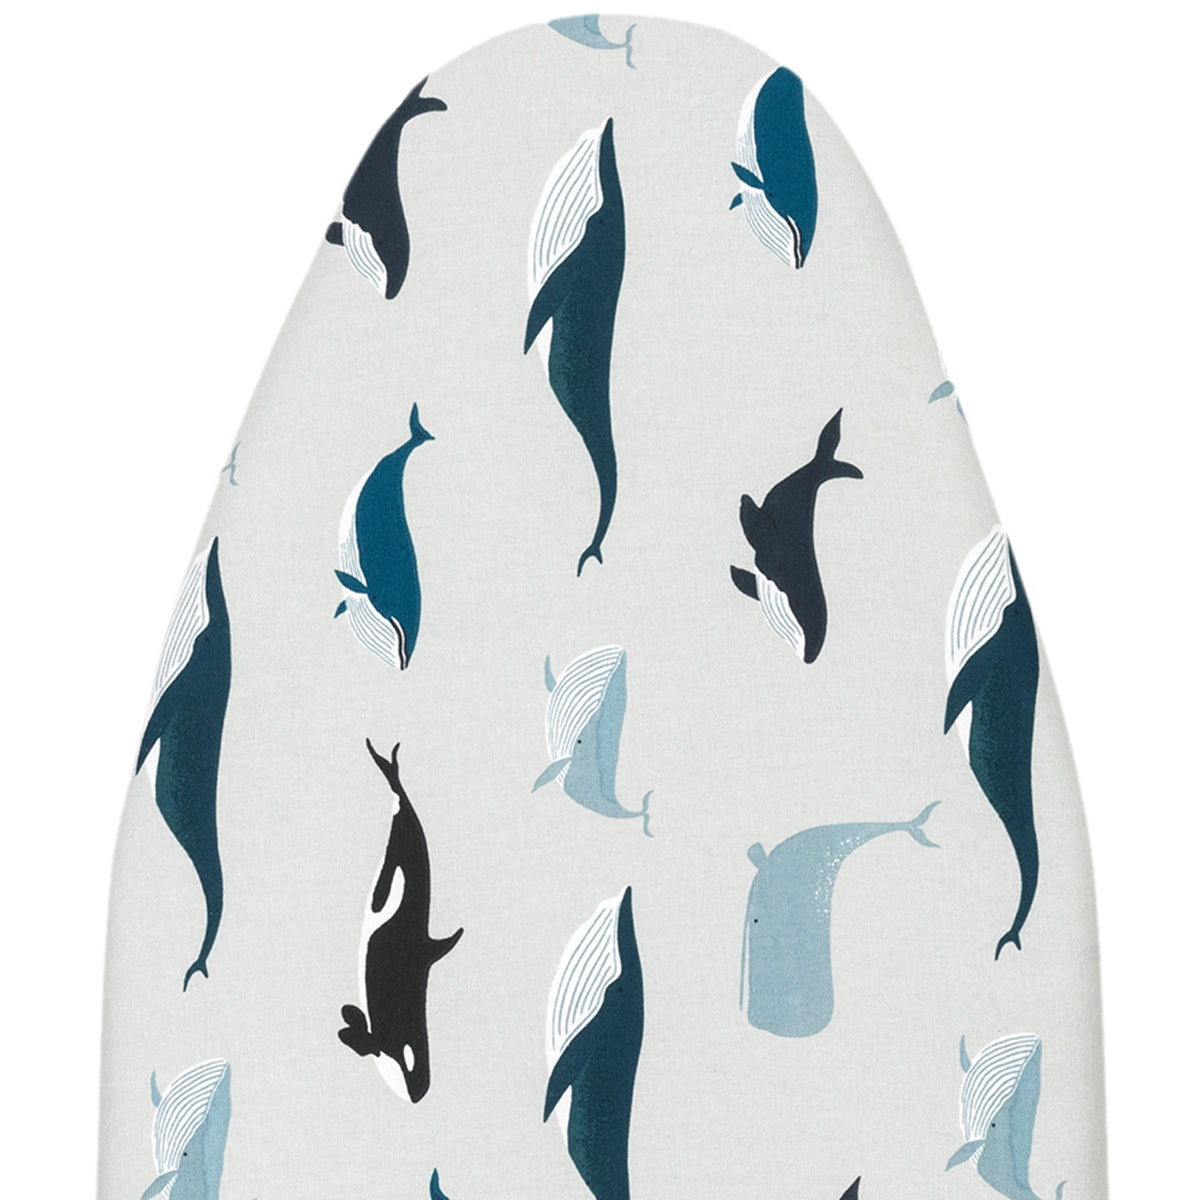 Whales Cover for Ironing Board by Sophie Allport